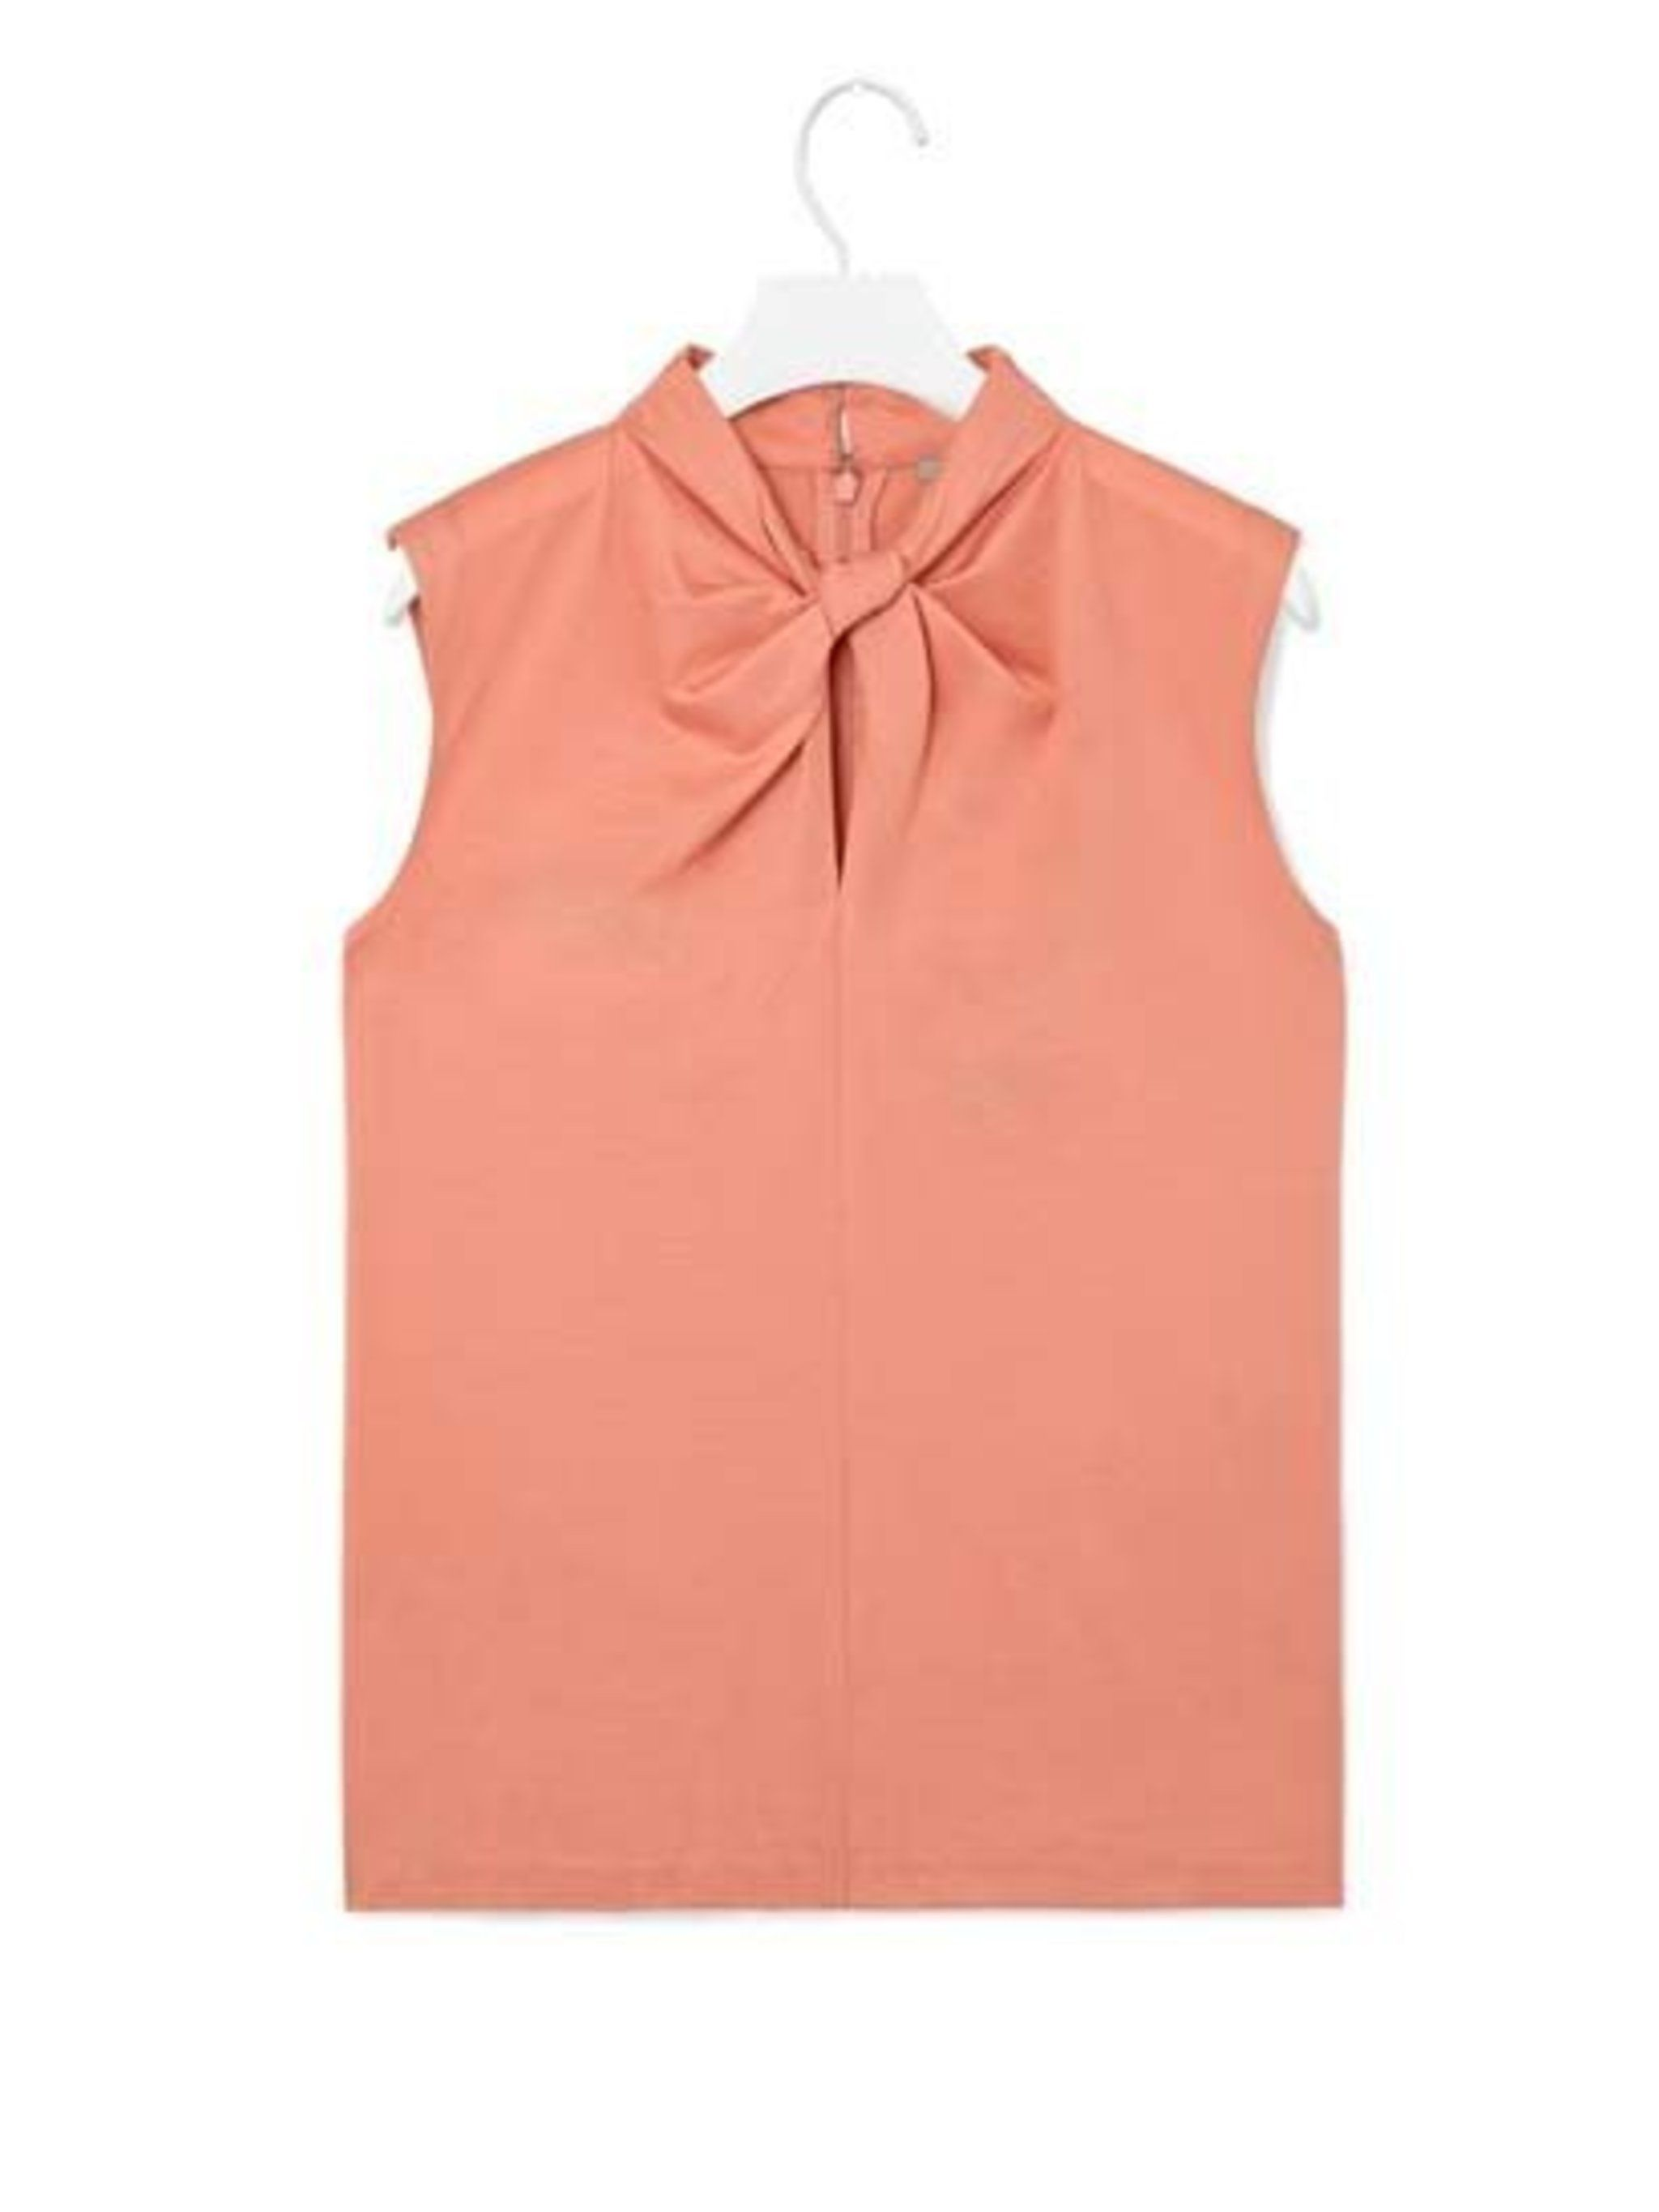 """<p>A loose-fit for a relaxed silhouette, it has a stand-up collar and hidden zip fastening on the back. £35 at <a href=""""http://www.cosstores.com/gb/Shop/Women/Tops/Knot_neckline_top/46885-15098887.1"""">COS</a>.</p>"""